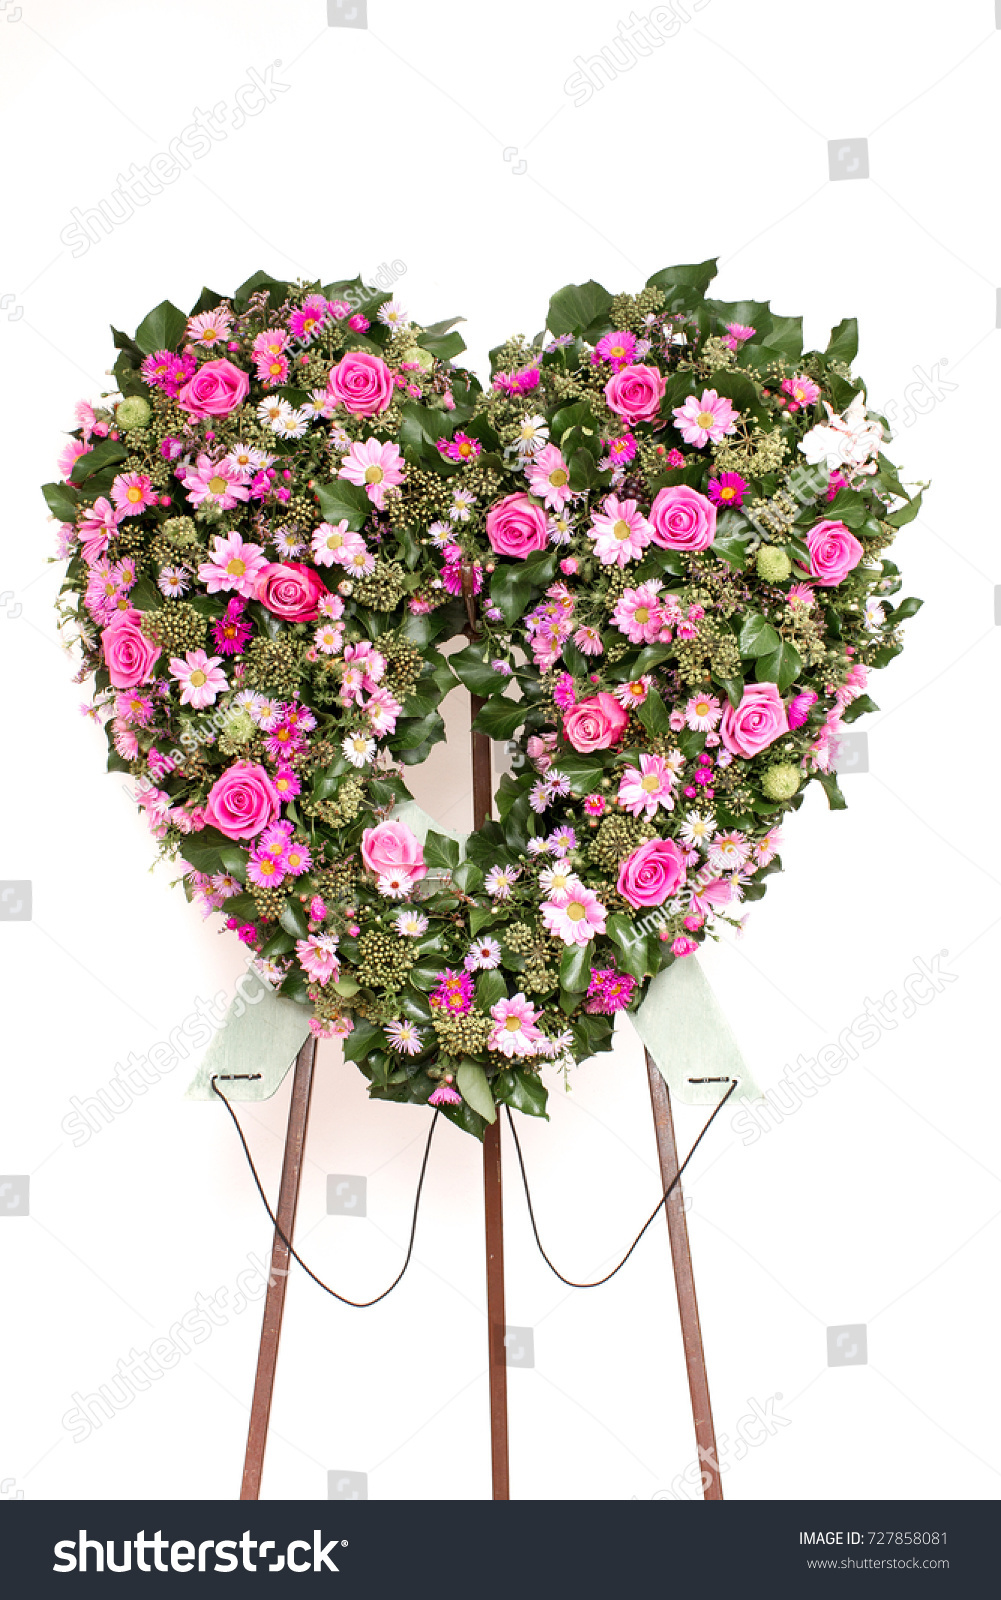 Heart shaped sympathy flowers funeral wreath stock photo edit now heart shaped sympathy flowers or funeral wreath flowers pink roses and gerbers and eucalyptus izmirmasajfo